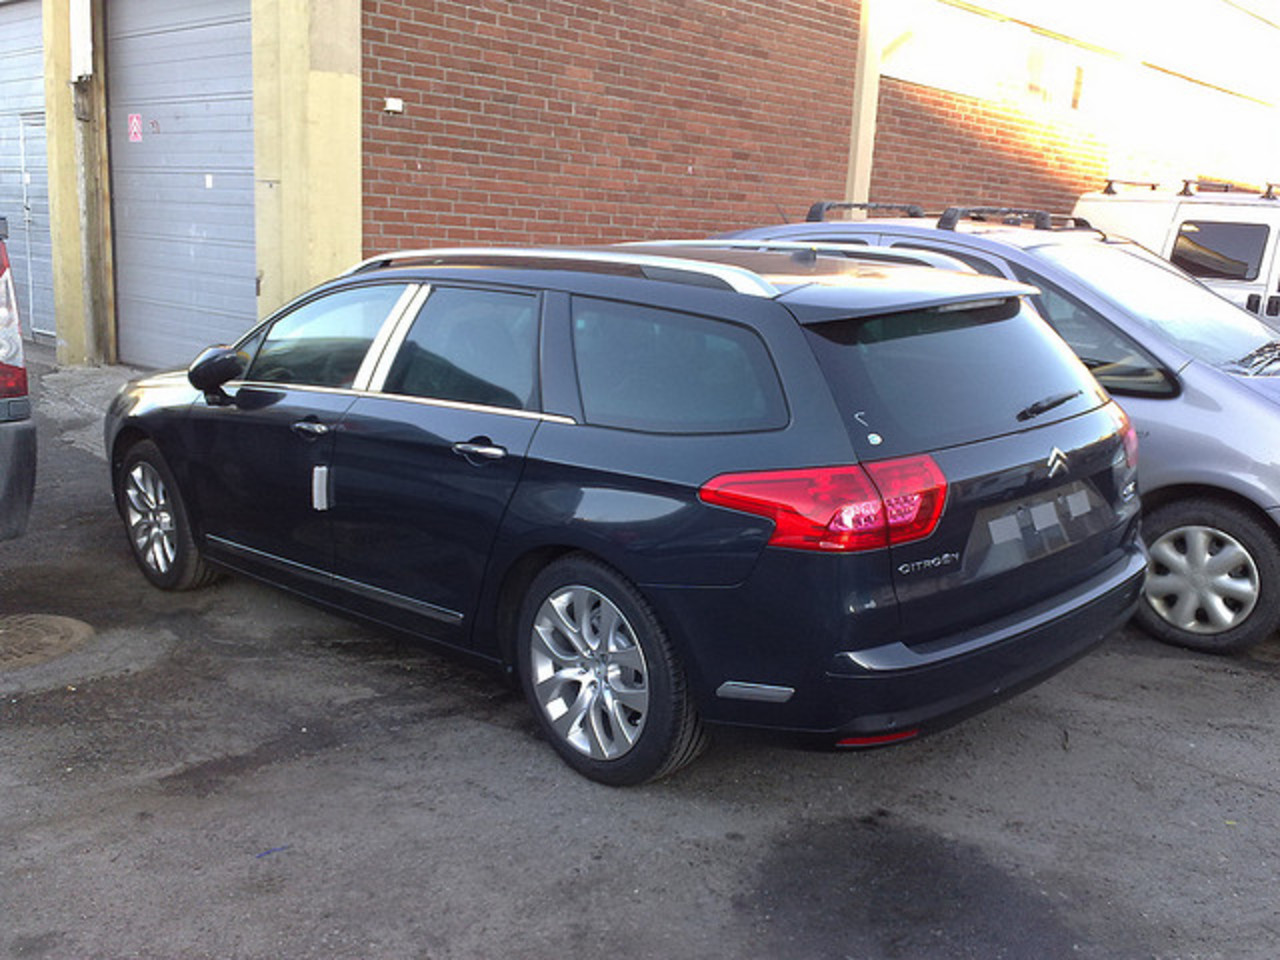 Citroen C5 Tourer HDI 138 Exclusive | Flickr - Photo Sharing!